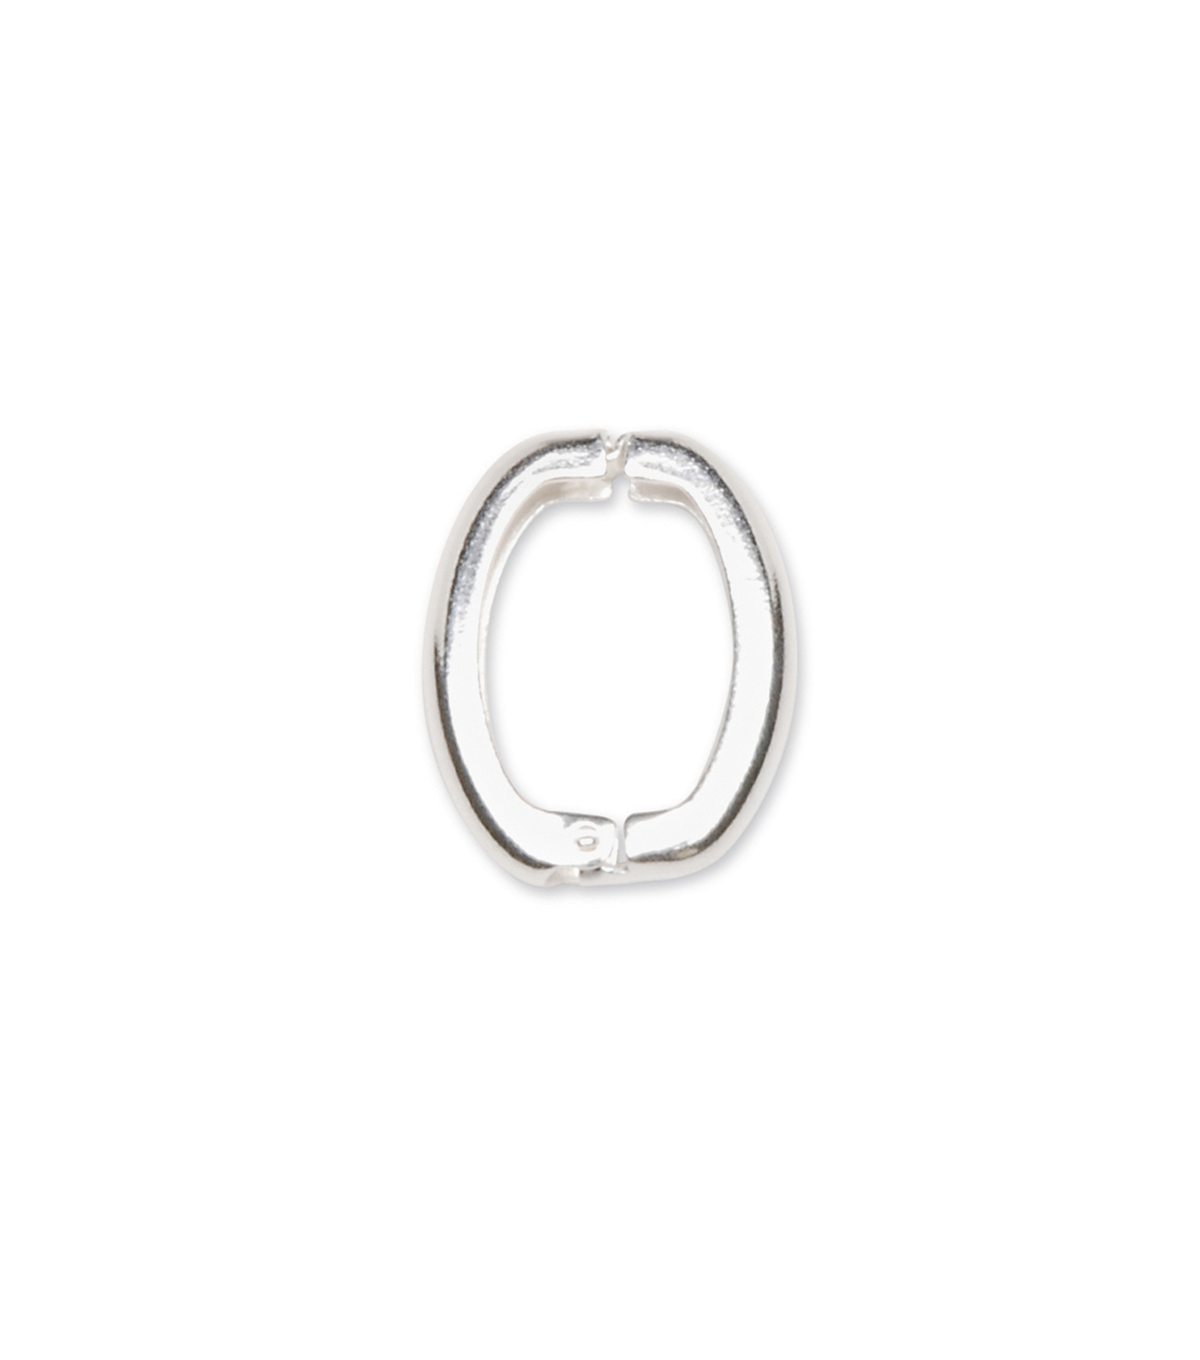 Bright Silver Clip Loop for Pendants, 13mm x 10mm